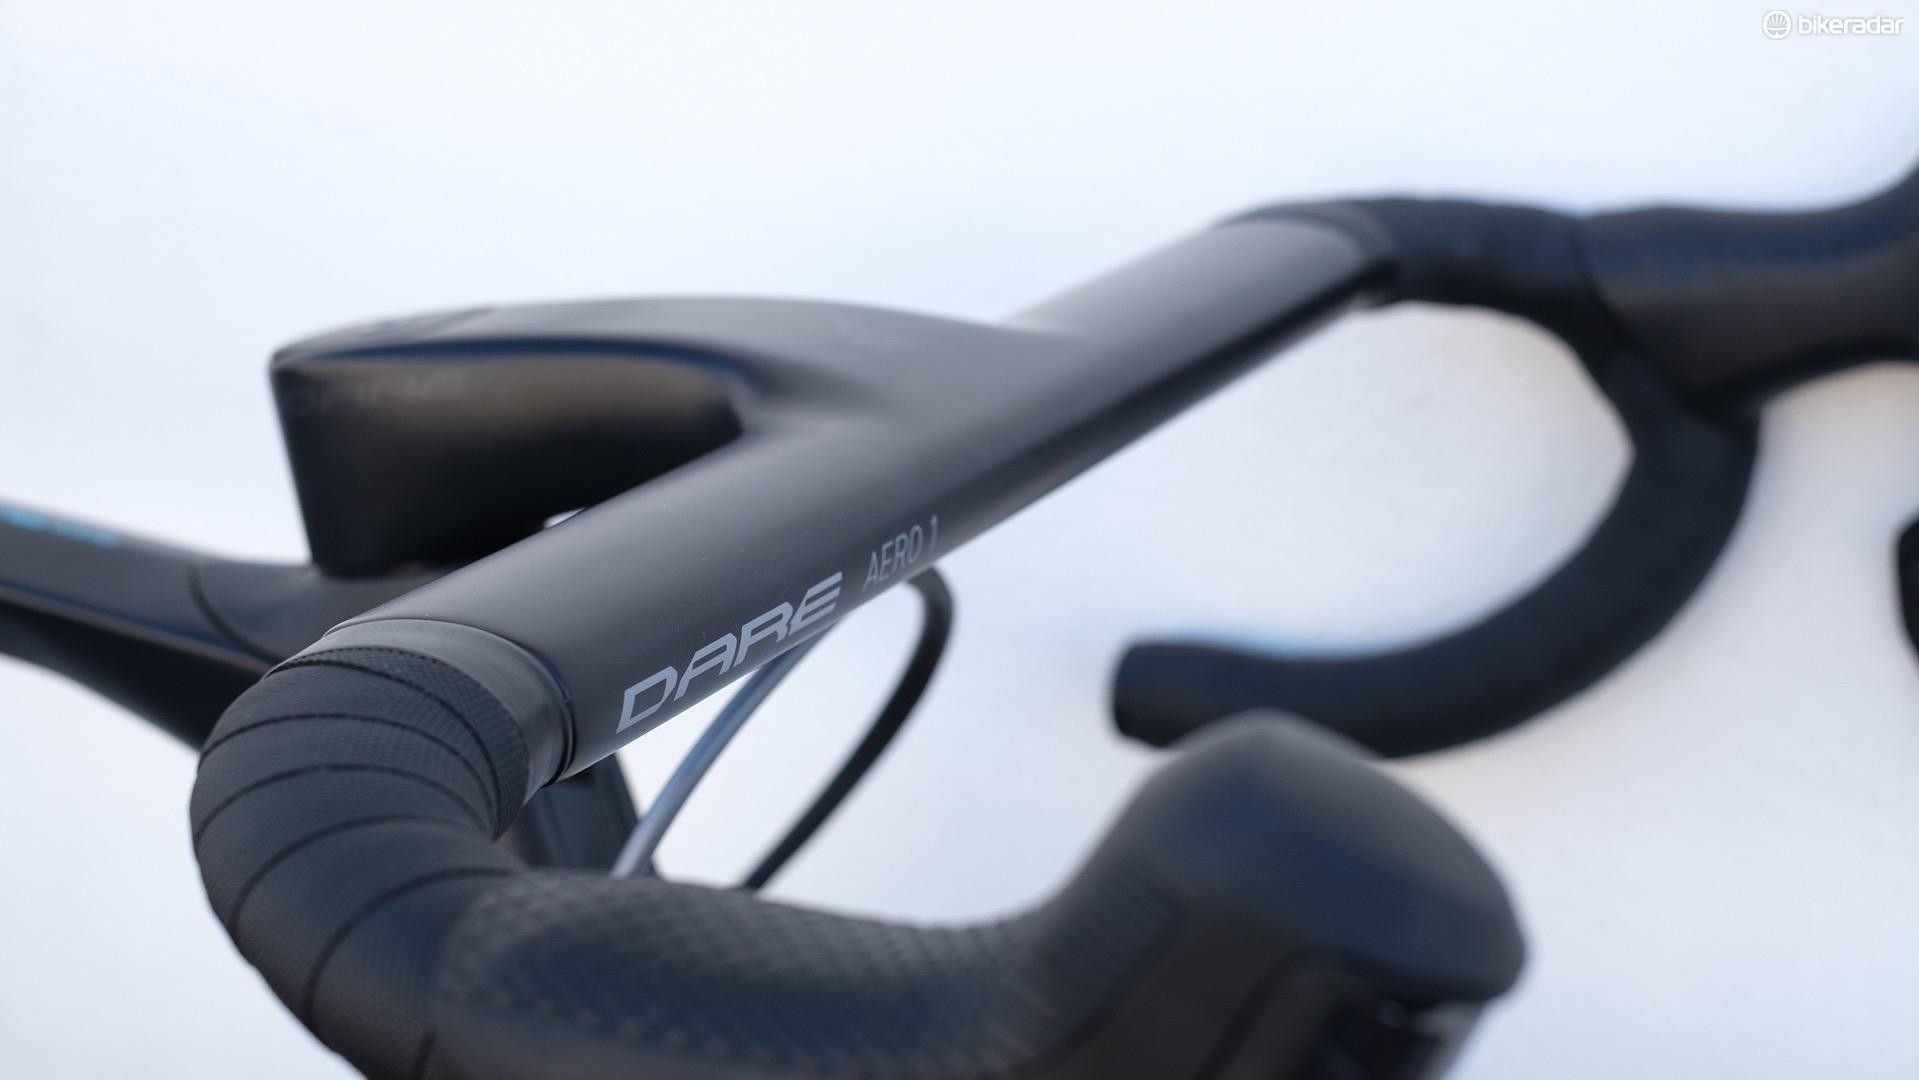 Dare's own aero bar is available as an upgrade for almost all of its road bikes